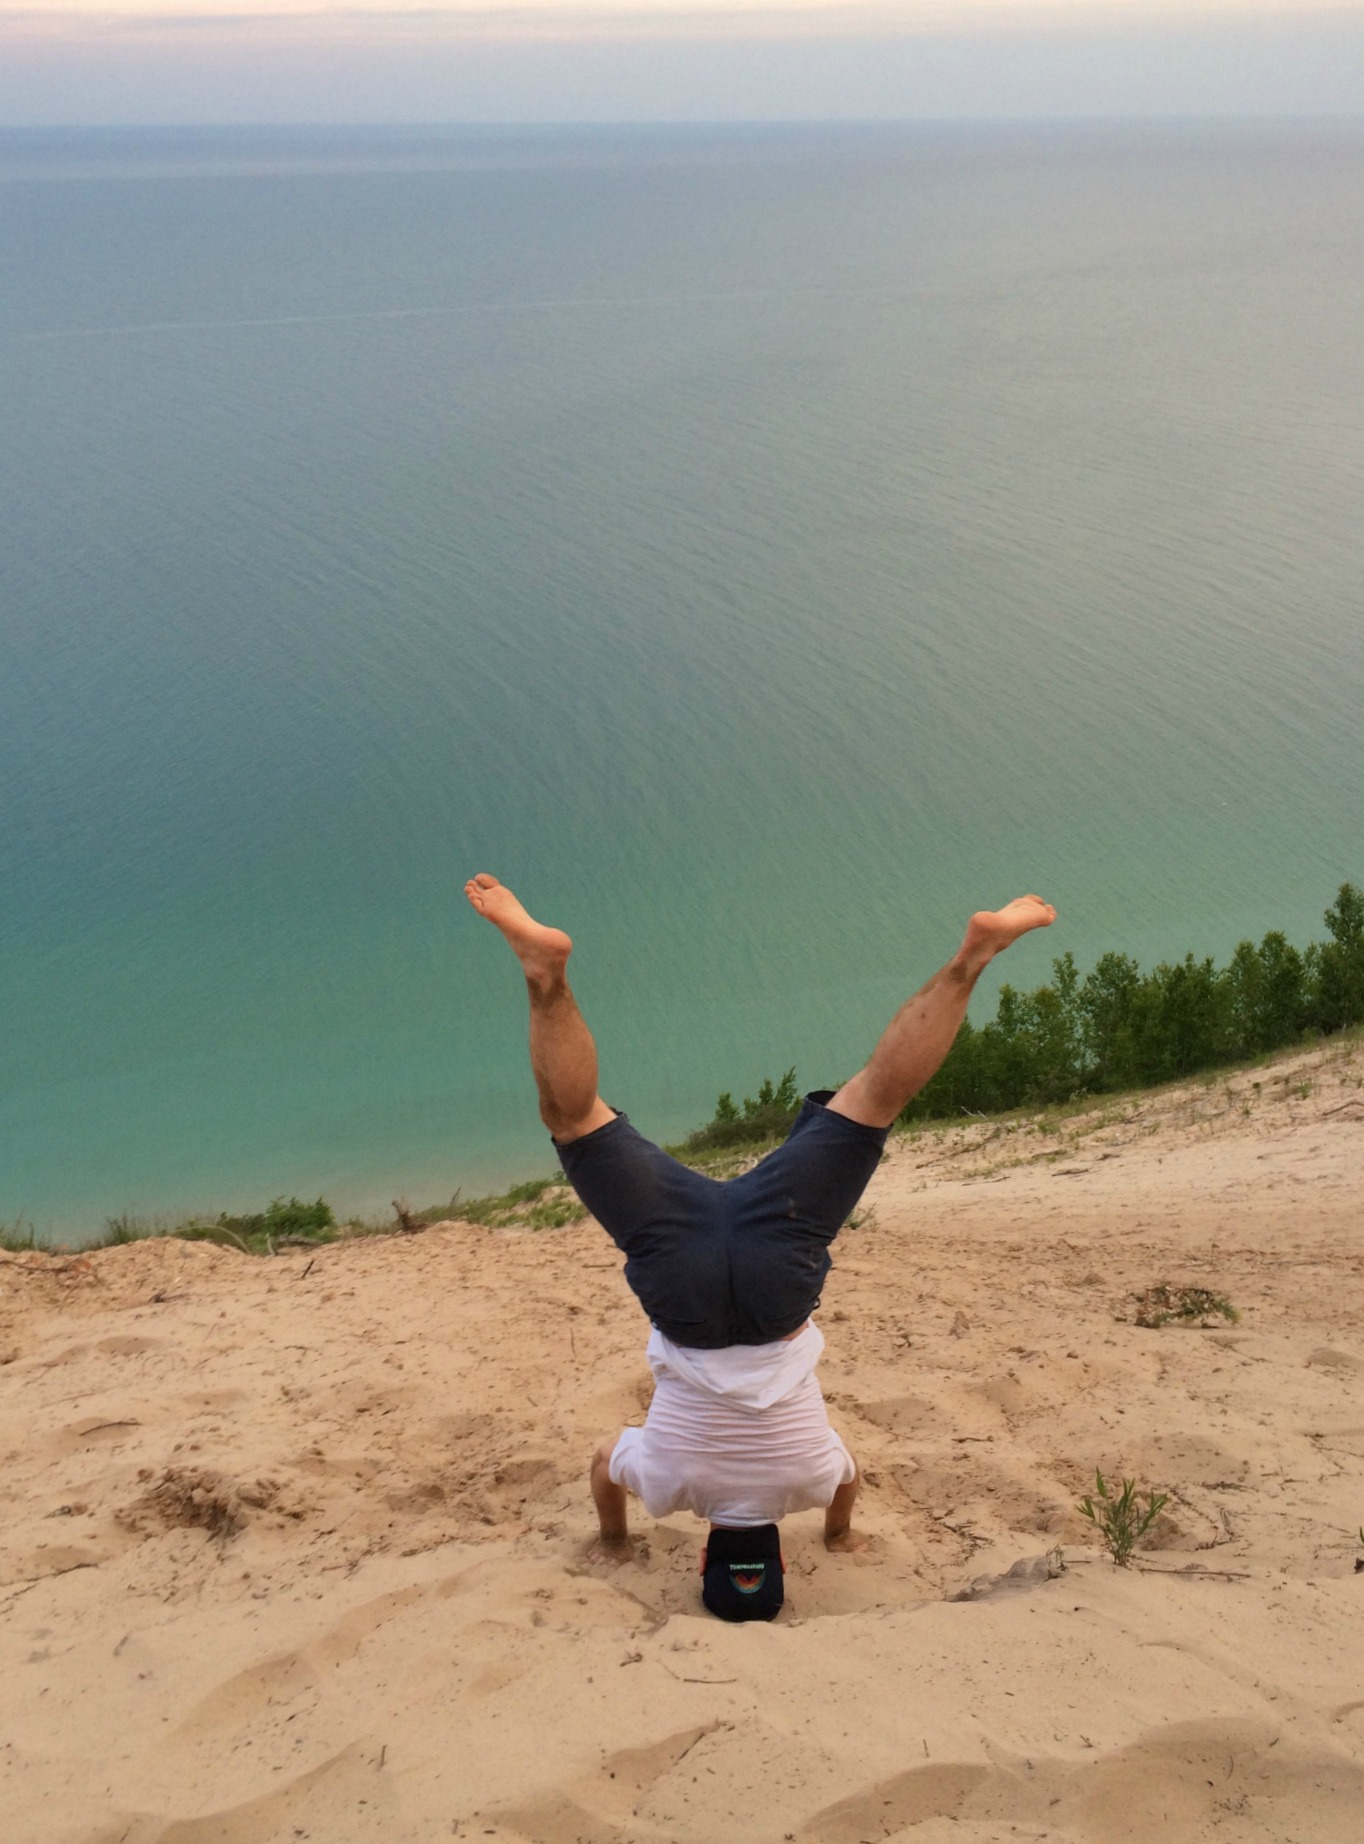 scott at pyramid point headstand